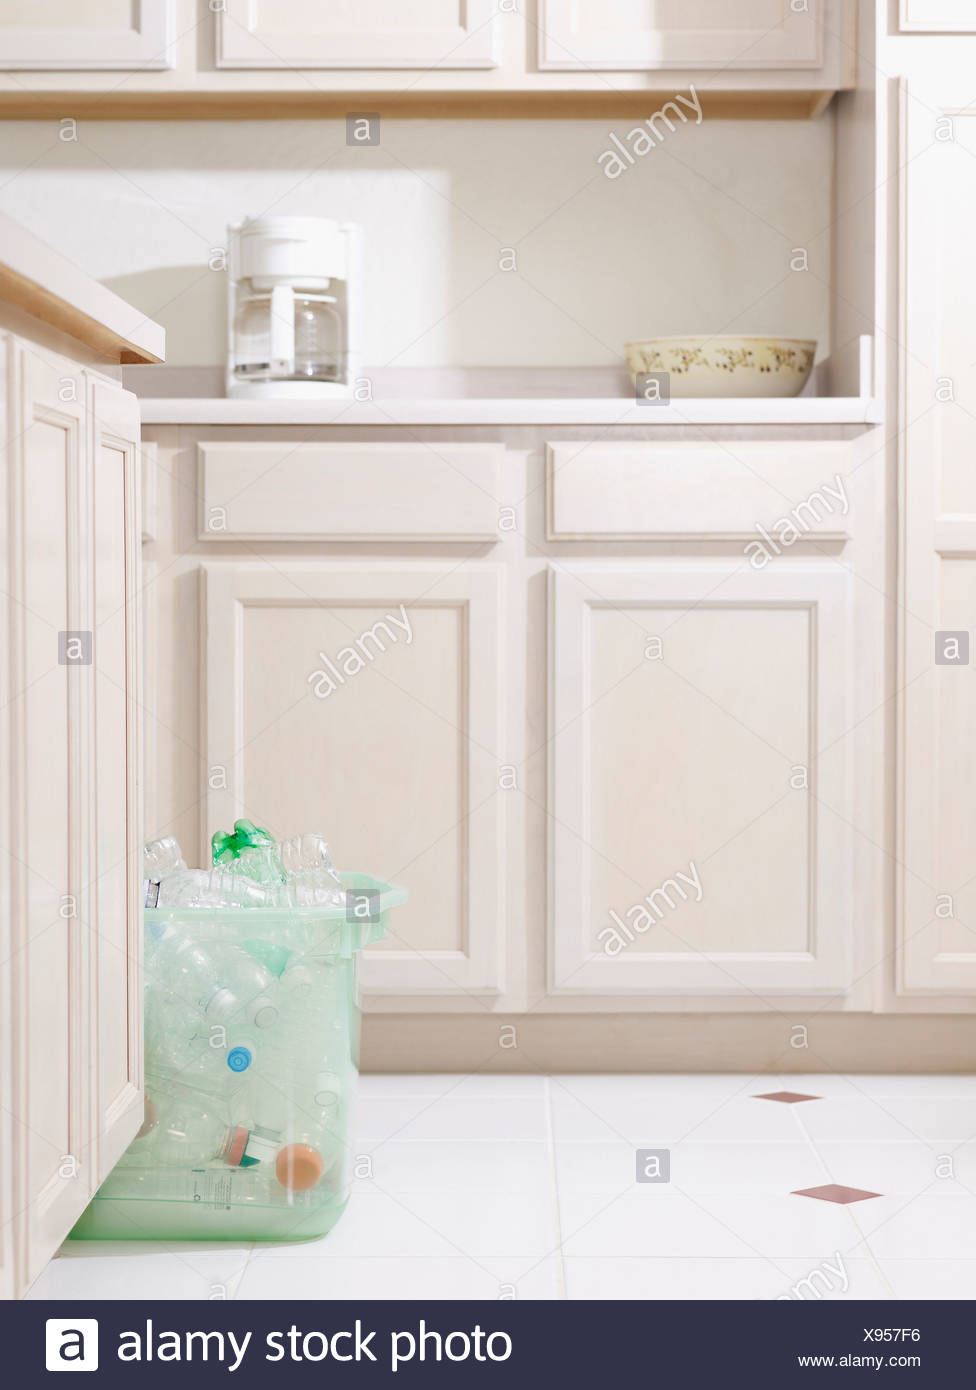 Bin of recyclable materials sitting on floor in kitchen - Stock Image